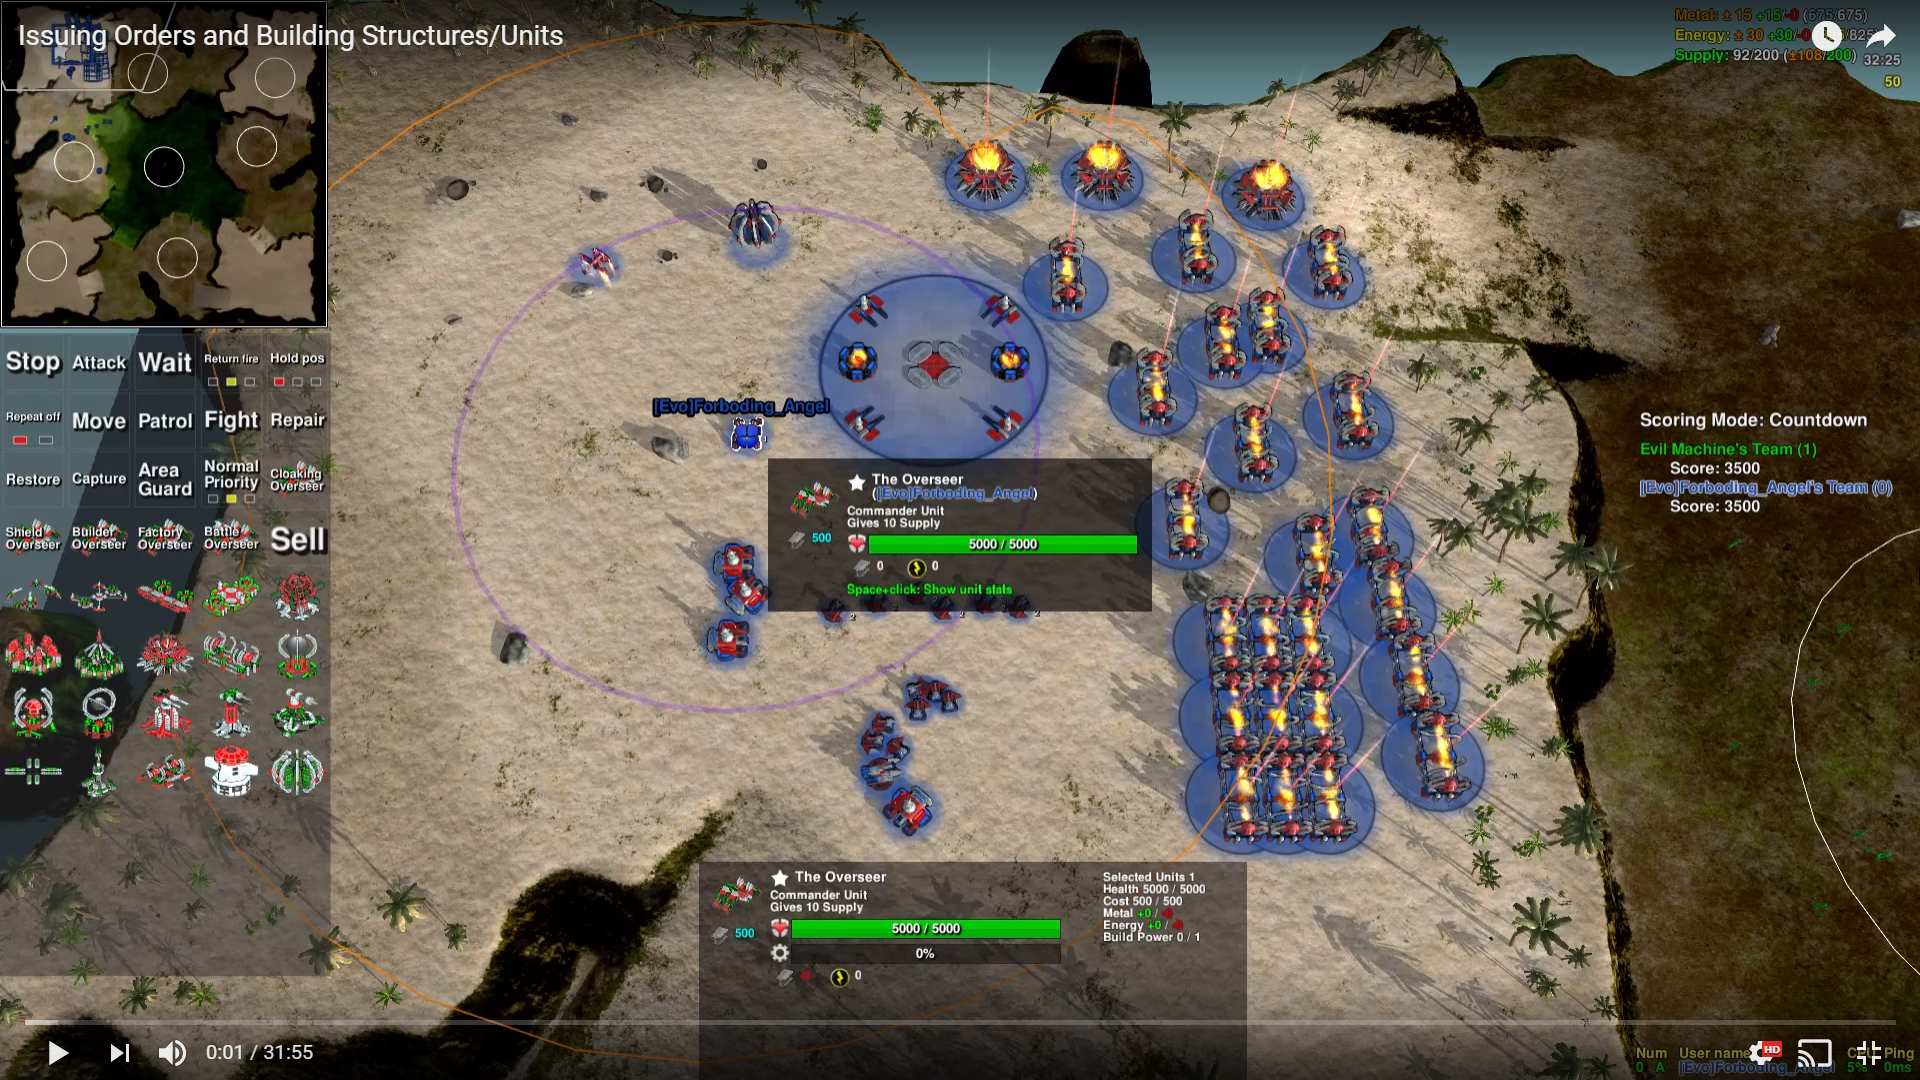 How to Play: Issuing Orders and Building Structures/Units